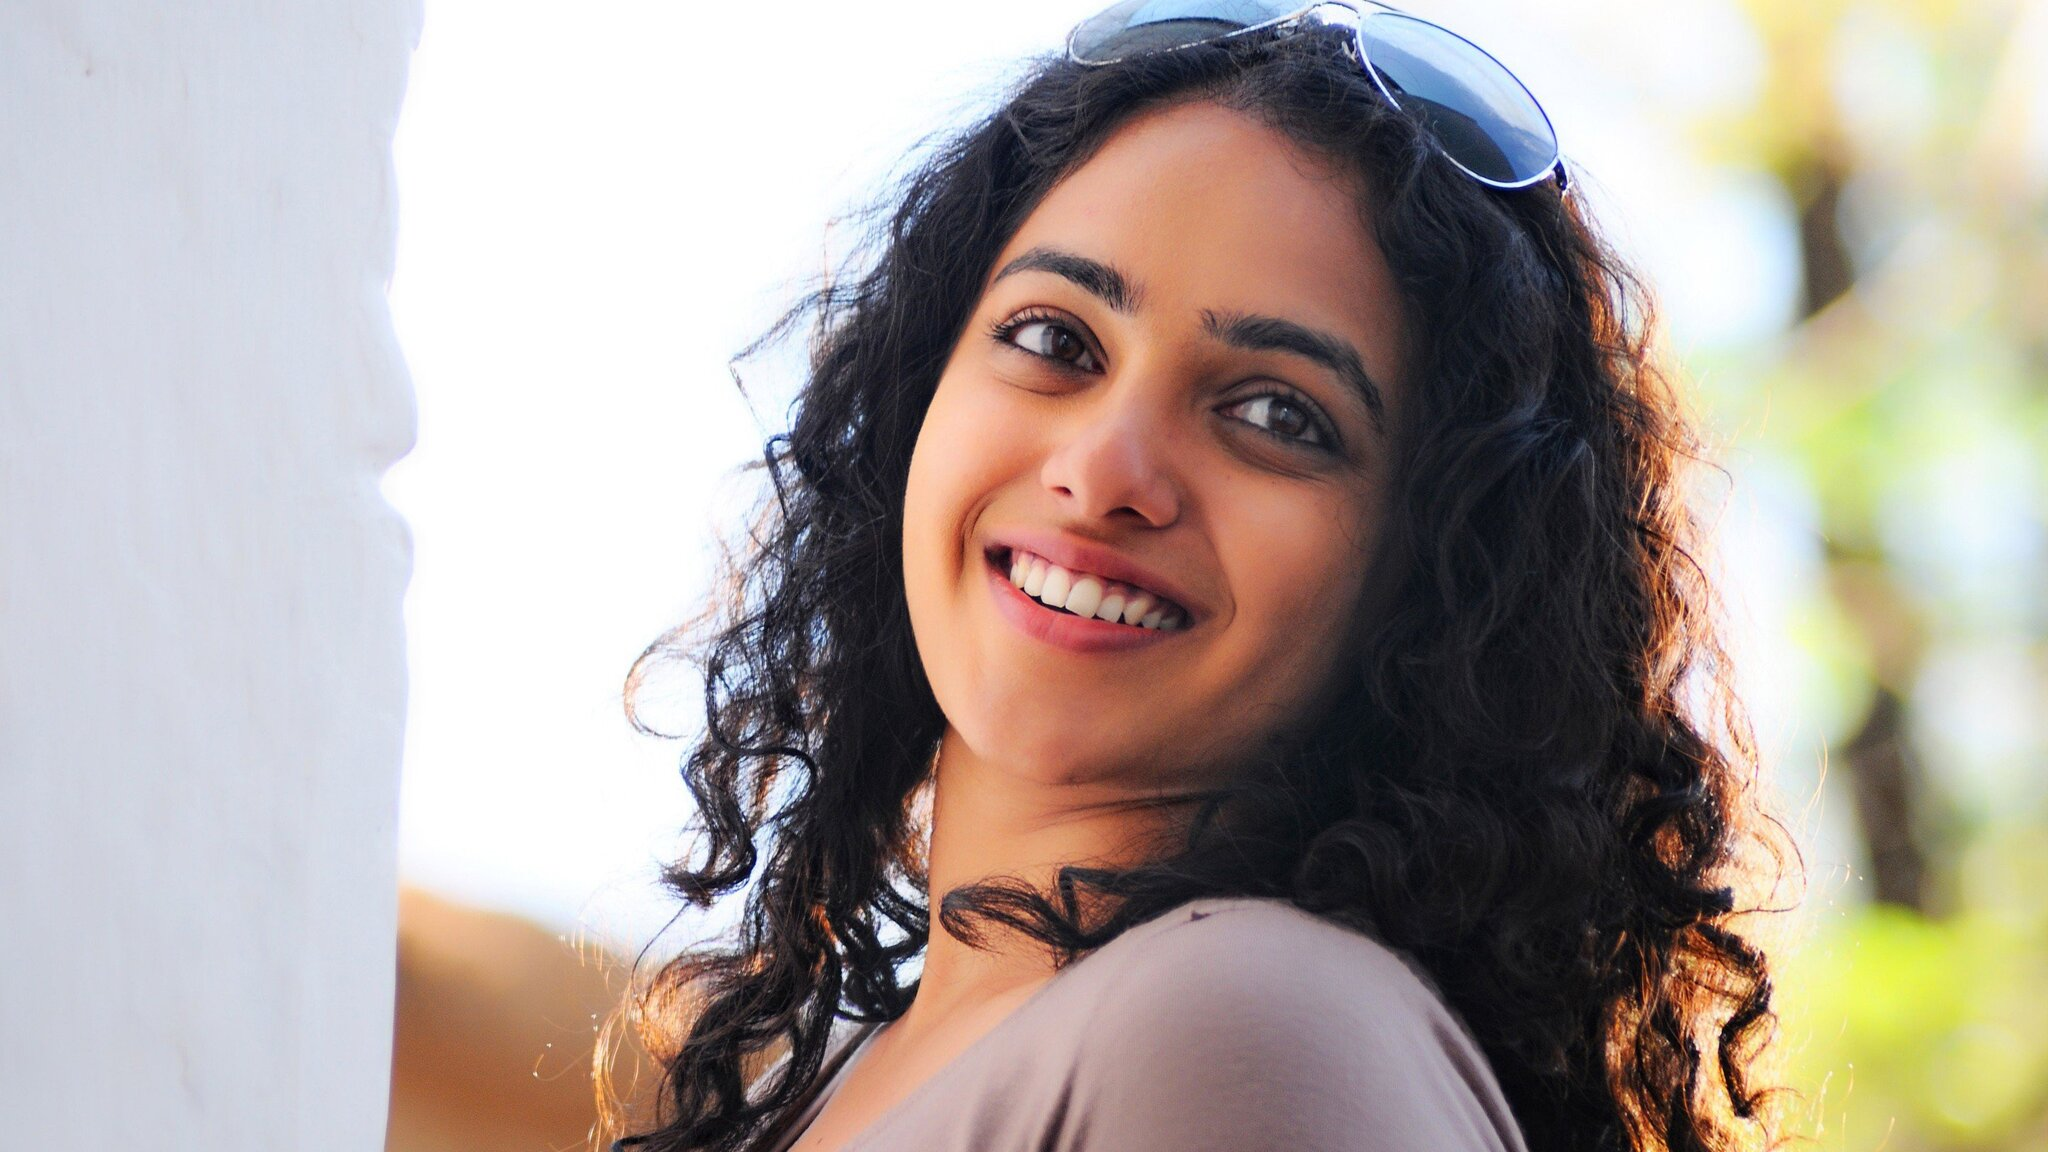 2048x1152 nithya menon 2048x1152 resolution hd 4k wallpapers, images